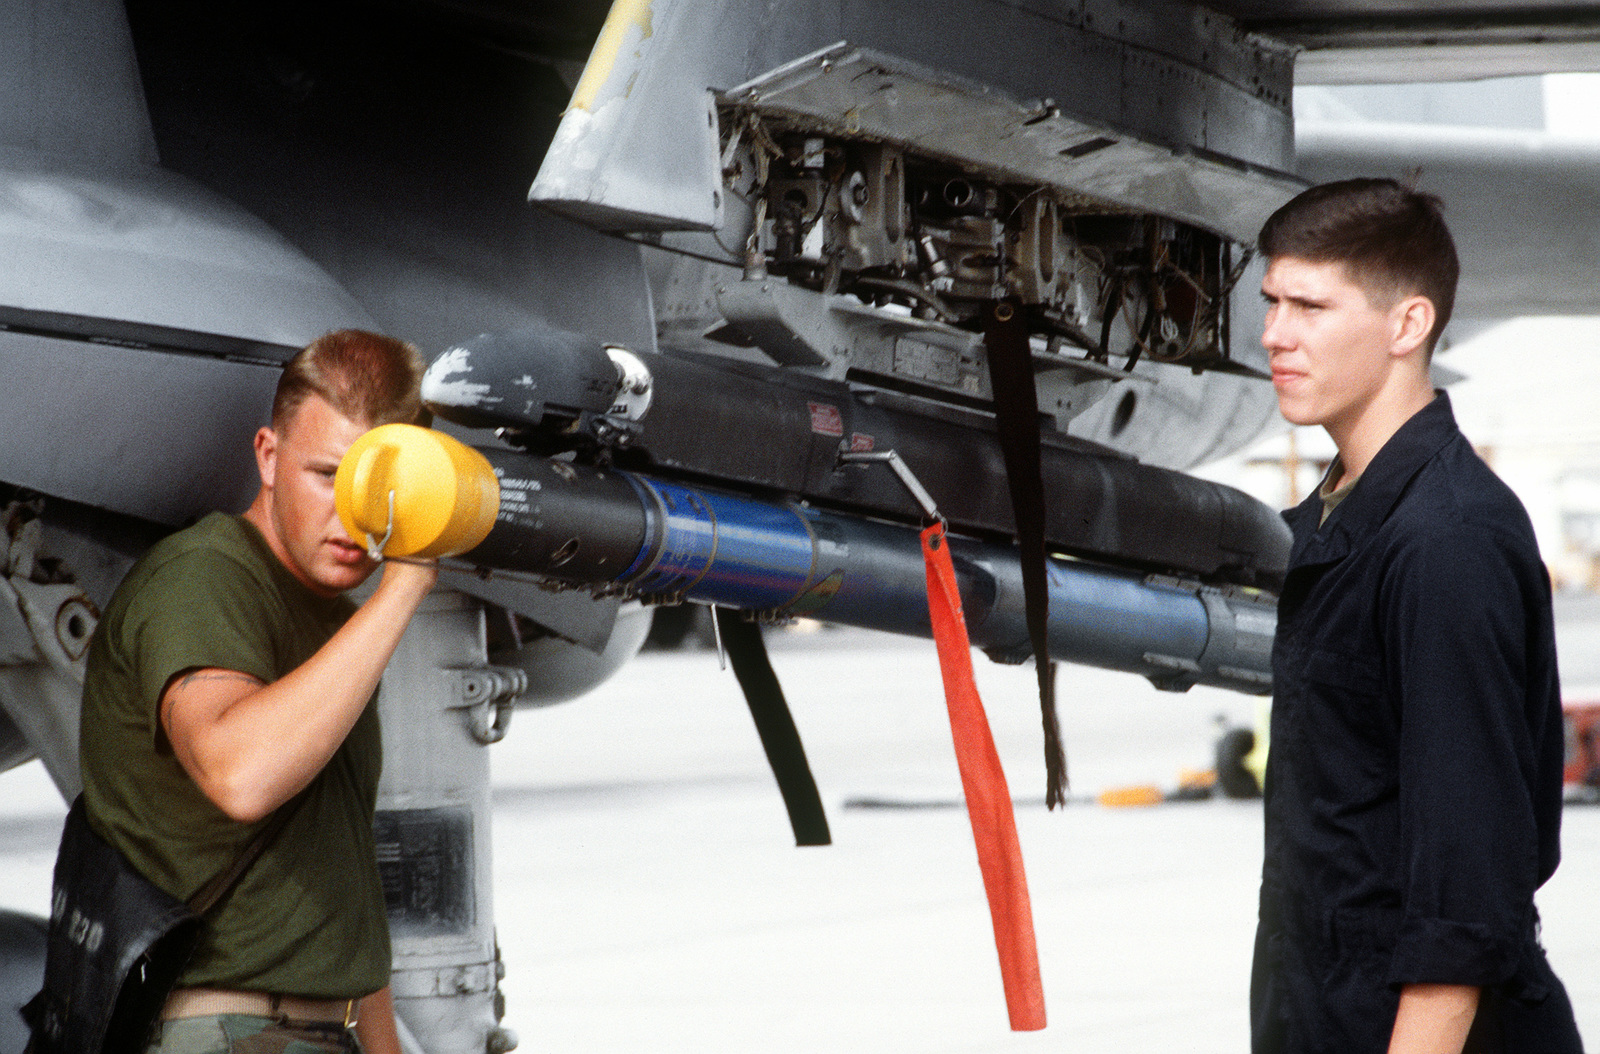 Members of Marine Attack Squadron 224 (VMA-224) inspect an AIM-9 Sidewinder missile mounted on the pylon of an A-6E Intruder aircraft. VMA-224, stationed at MCAS, Cherry Point, N.C., is on a two-week deployment to MCAS, Yuma